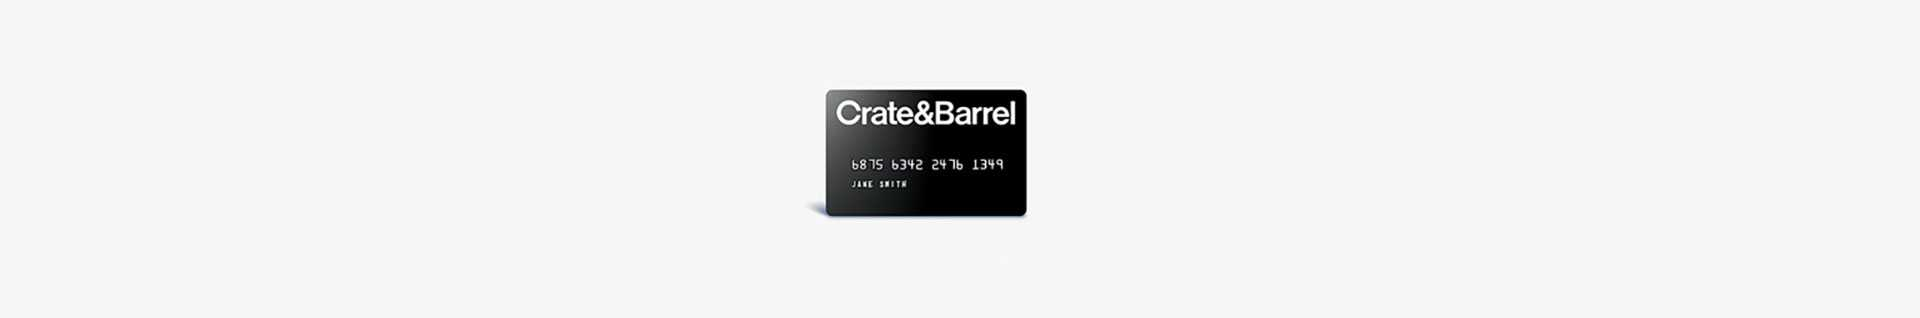 crate and barrel credit card